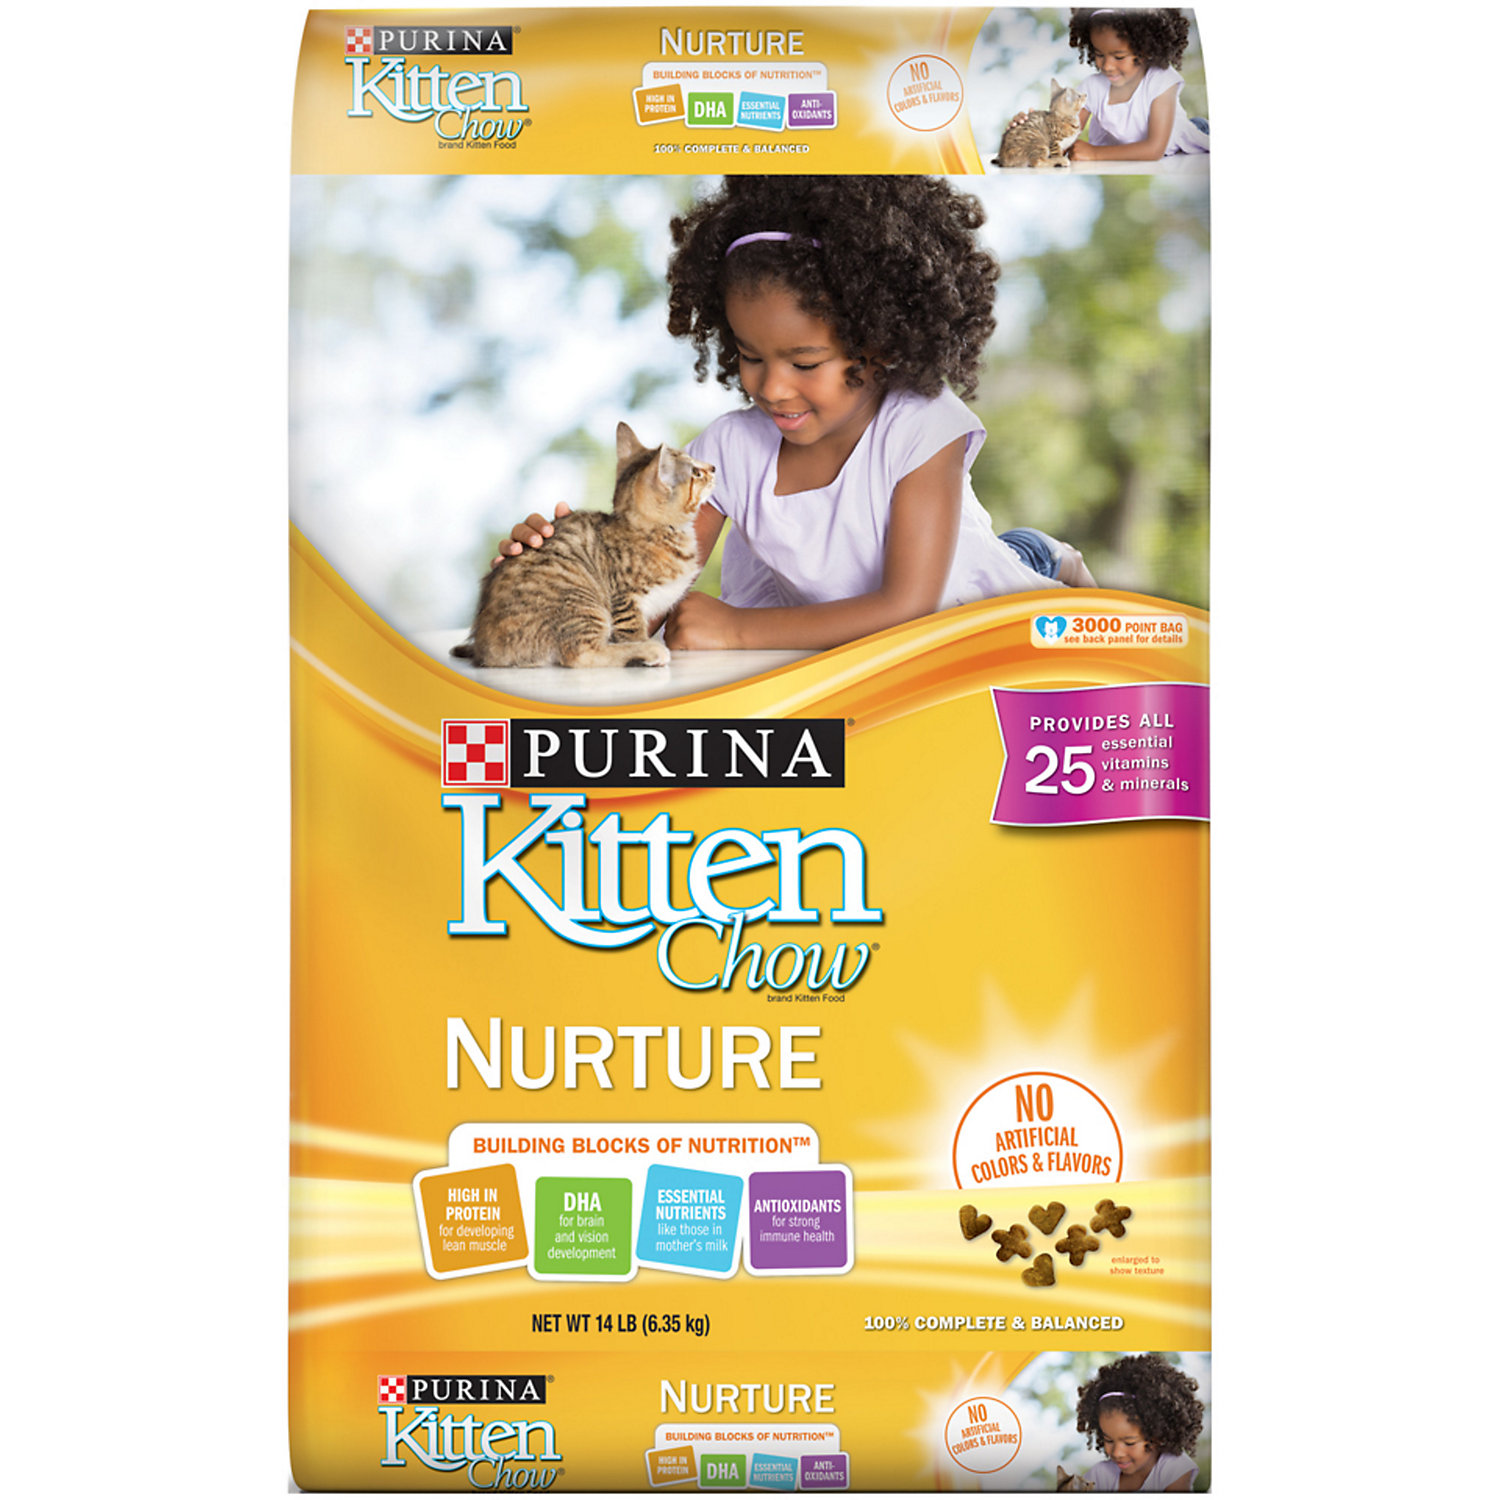 Purina Kitten Chow Nurture Formula Kitten Food